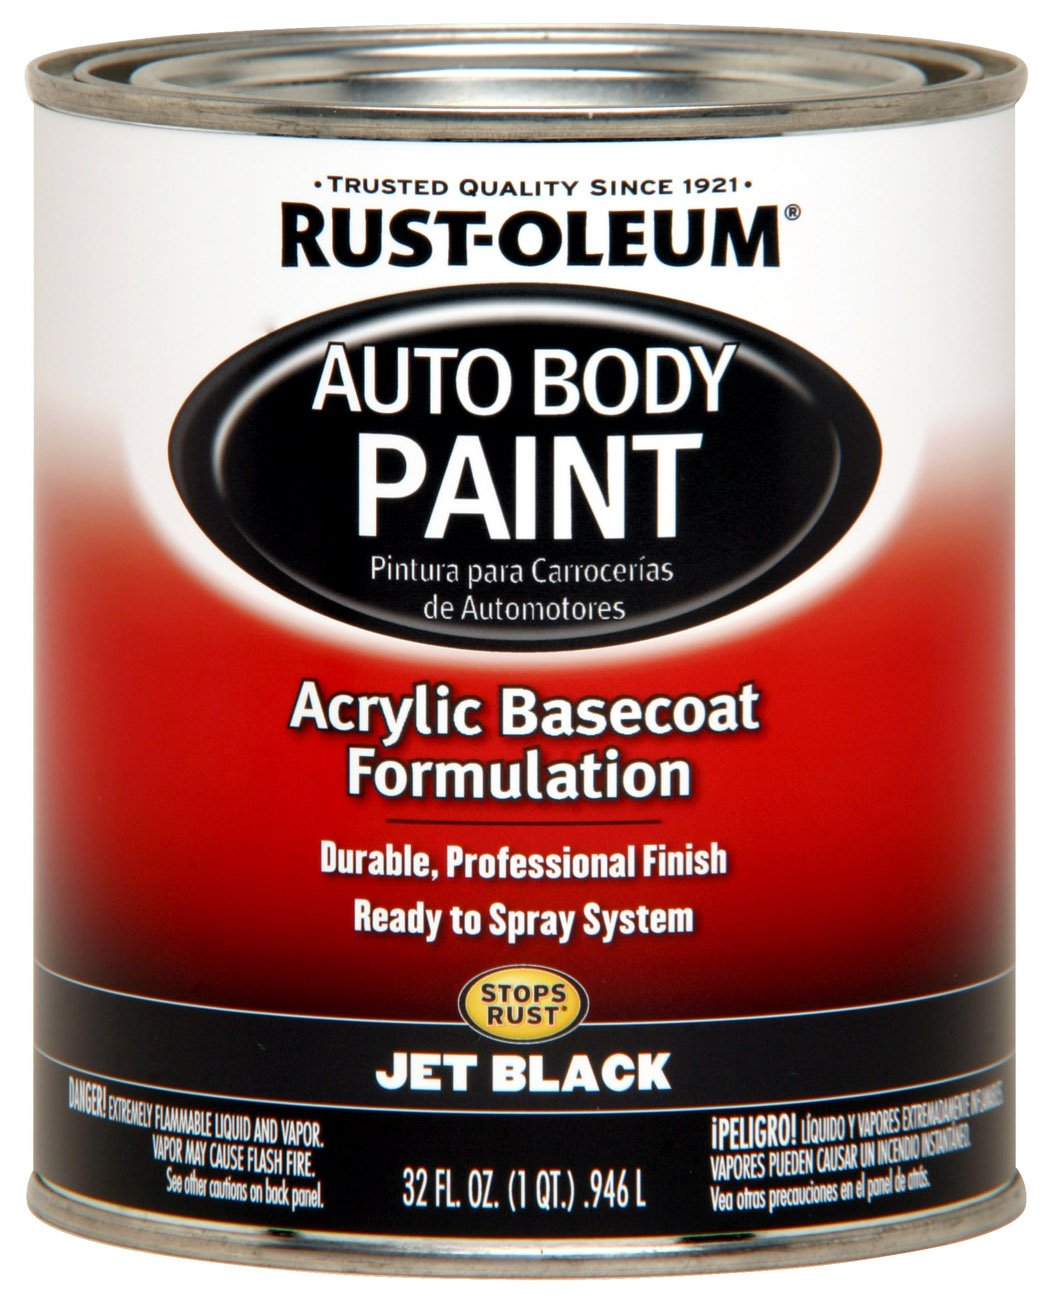 Midnight blue acrylic enamel paint kit auto paint car - Rust Oleum Automotive 253507 32 Ounce Autobody Paint Quart Hugger Orange House Paint Amazon Com